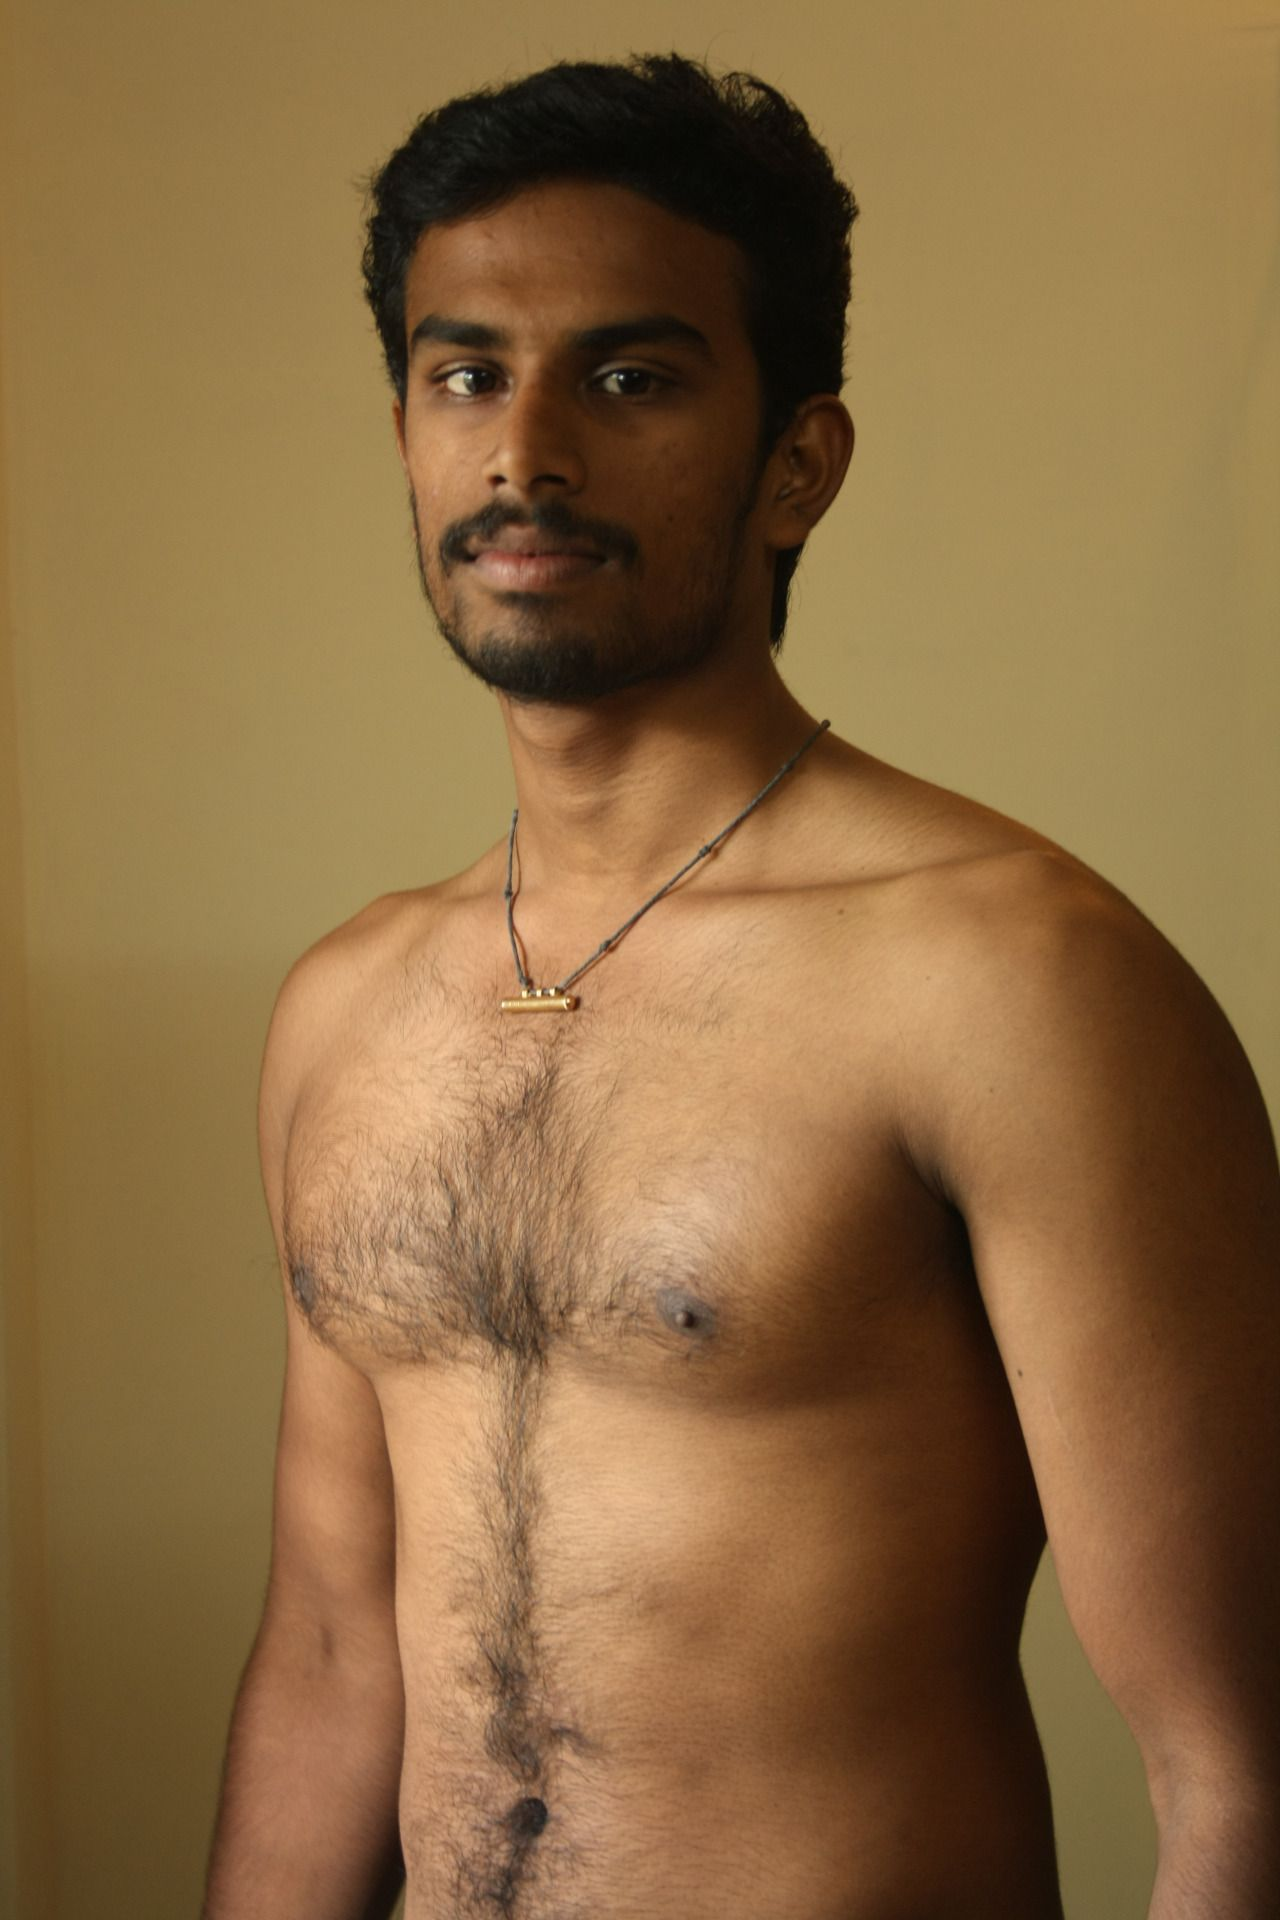 India hairy man high resolution stock photography and images